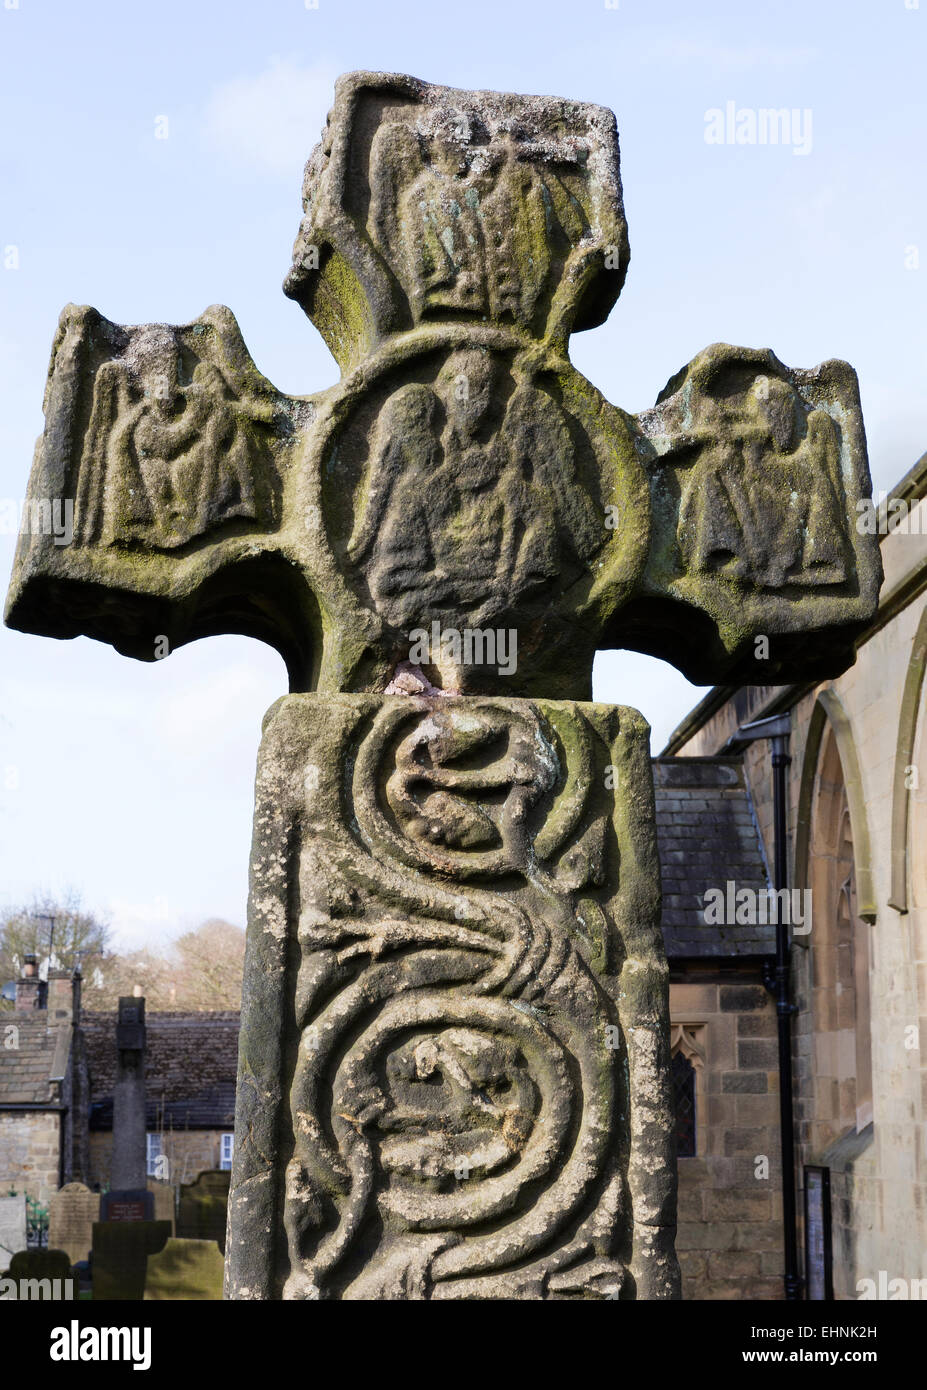 The 8th century Anglo Saxon or Celtic Cross in St Lawrence's churchyard at Eyam in the Derbyshire Peak District - Stock Image